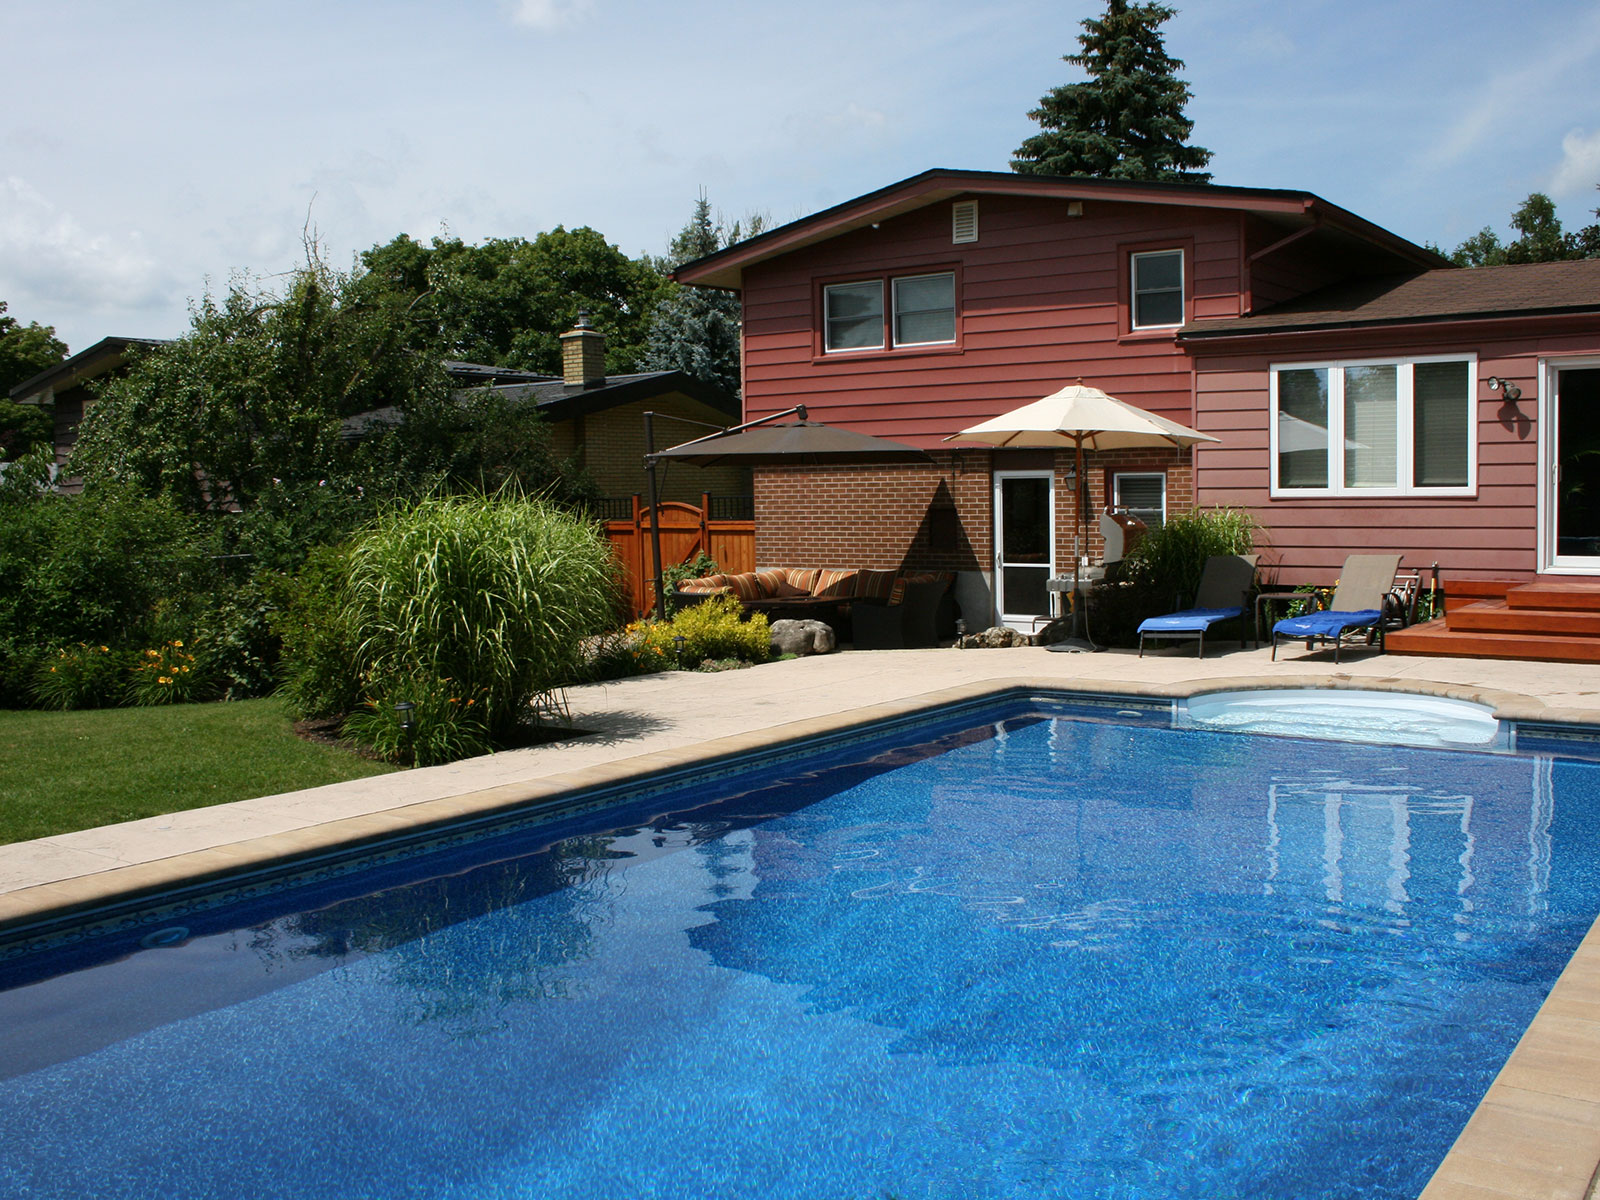 Pool - Stamped Concrete - Pool Deck